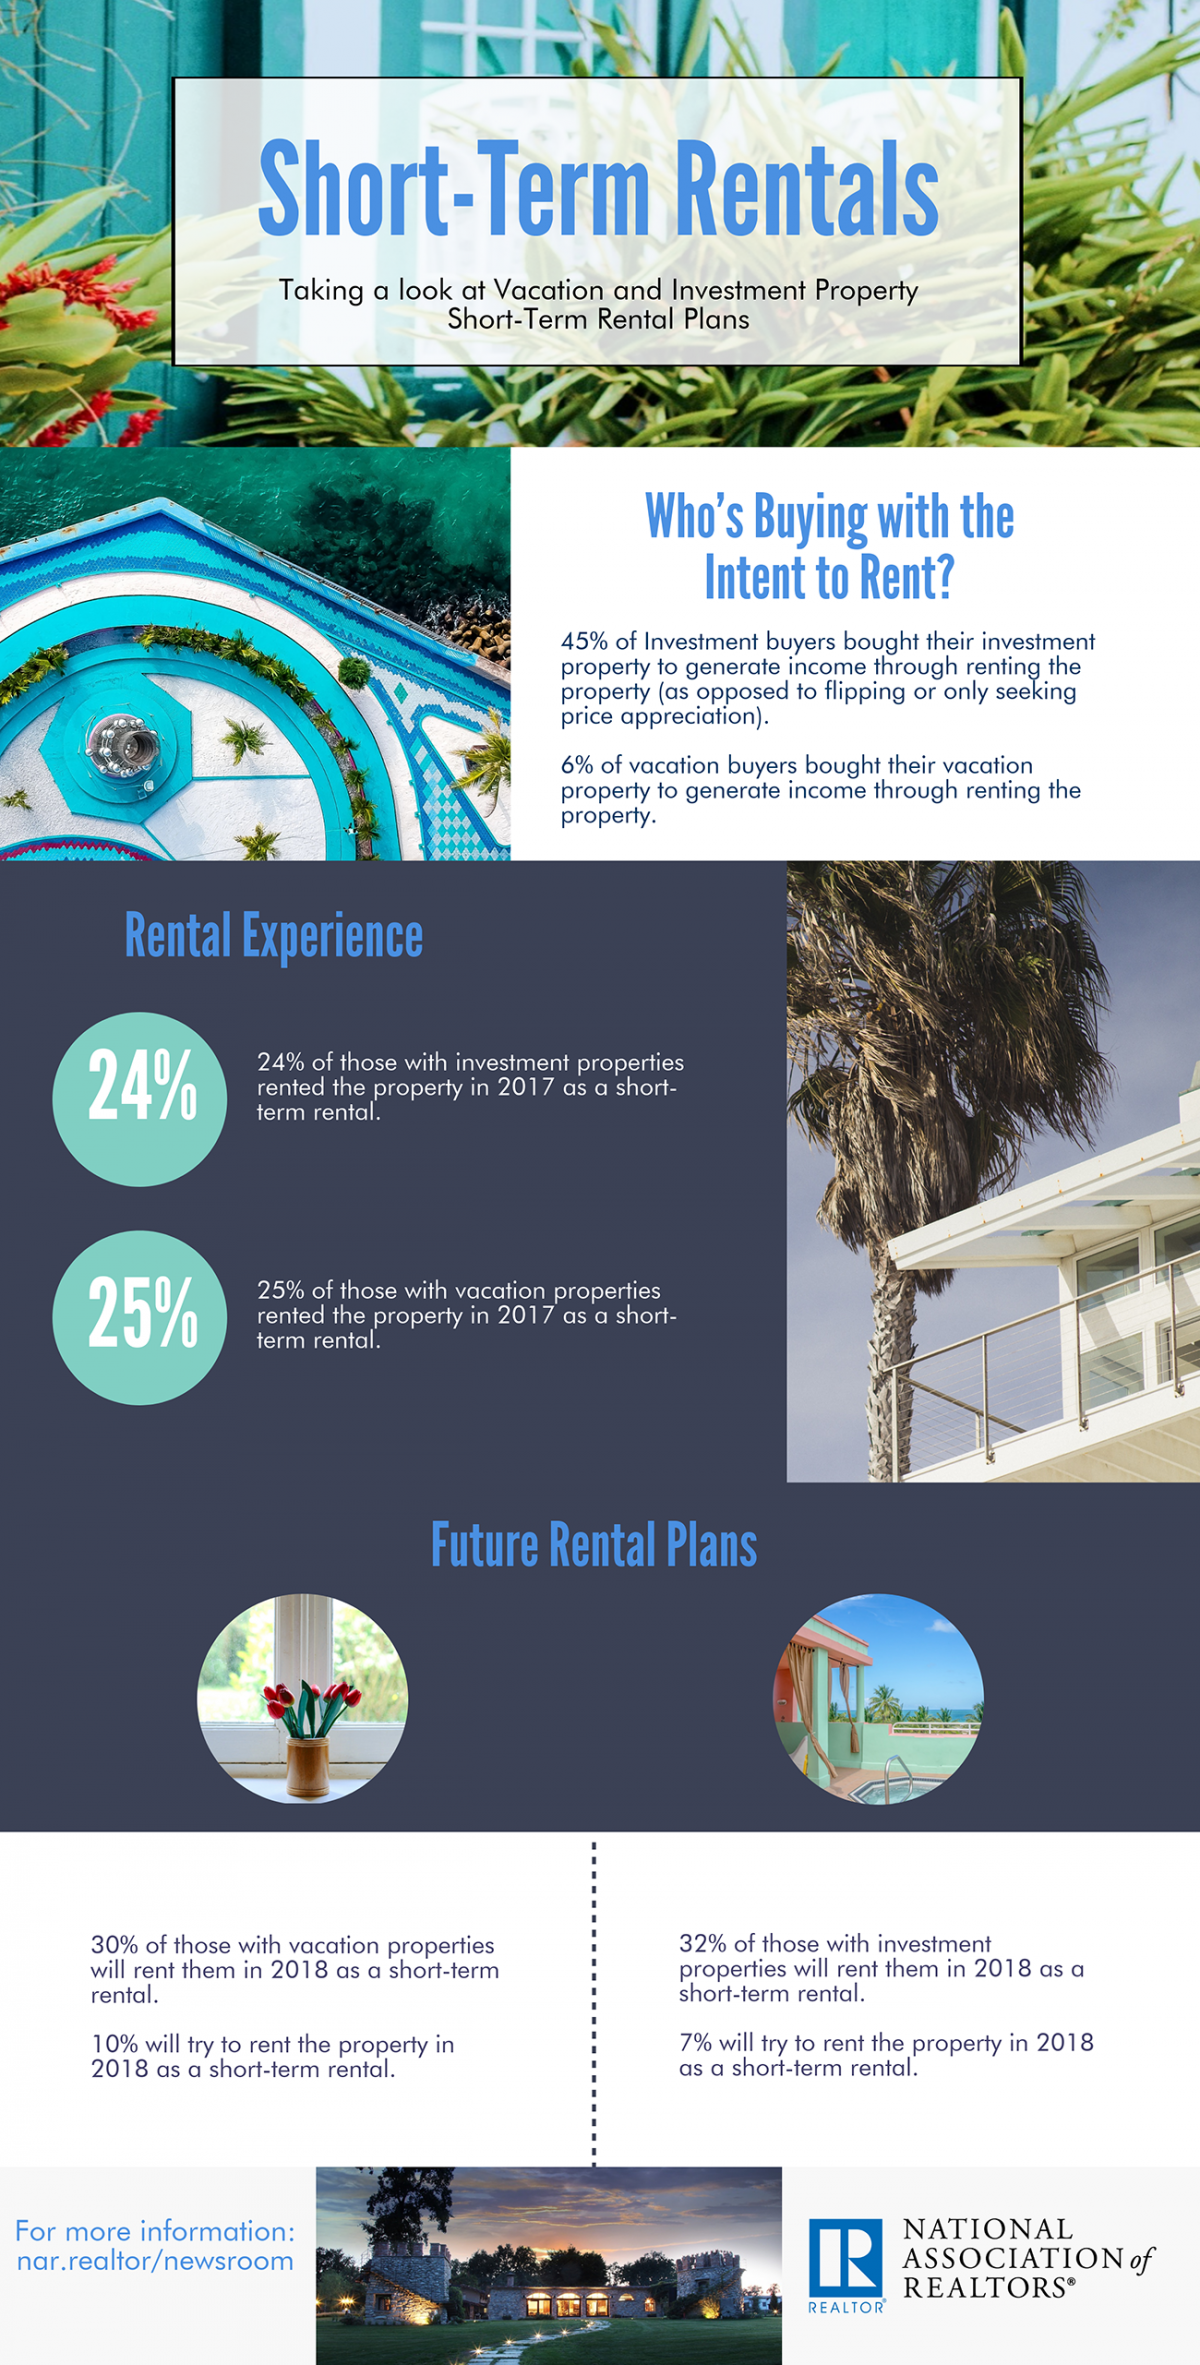 2018 short term rentals infographic 07 02 2018 1300w 2562h